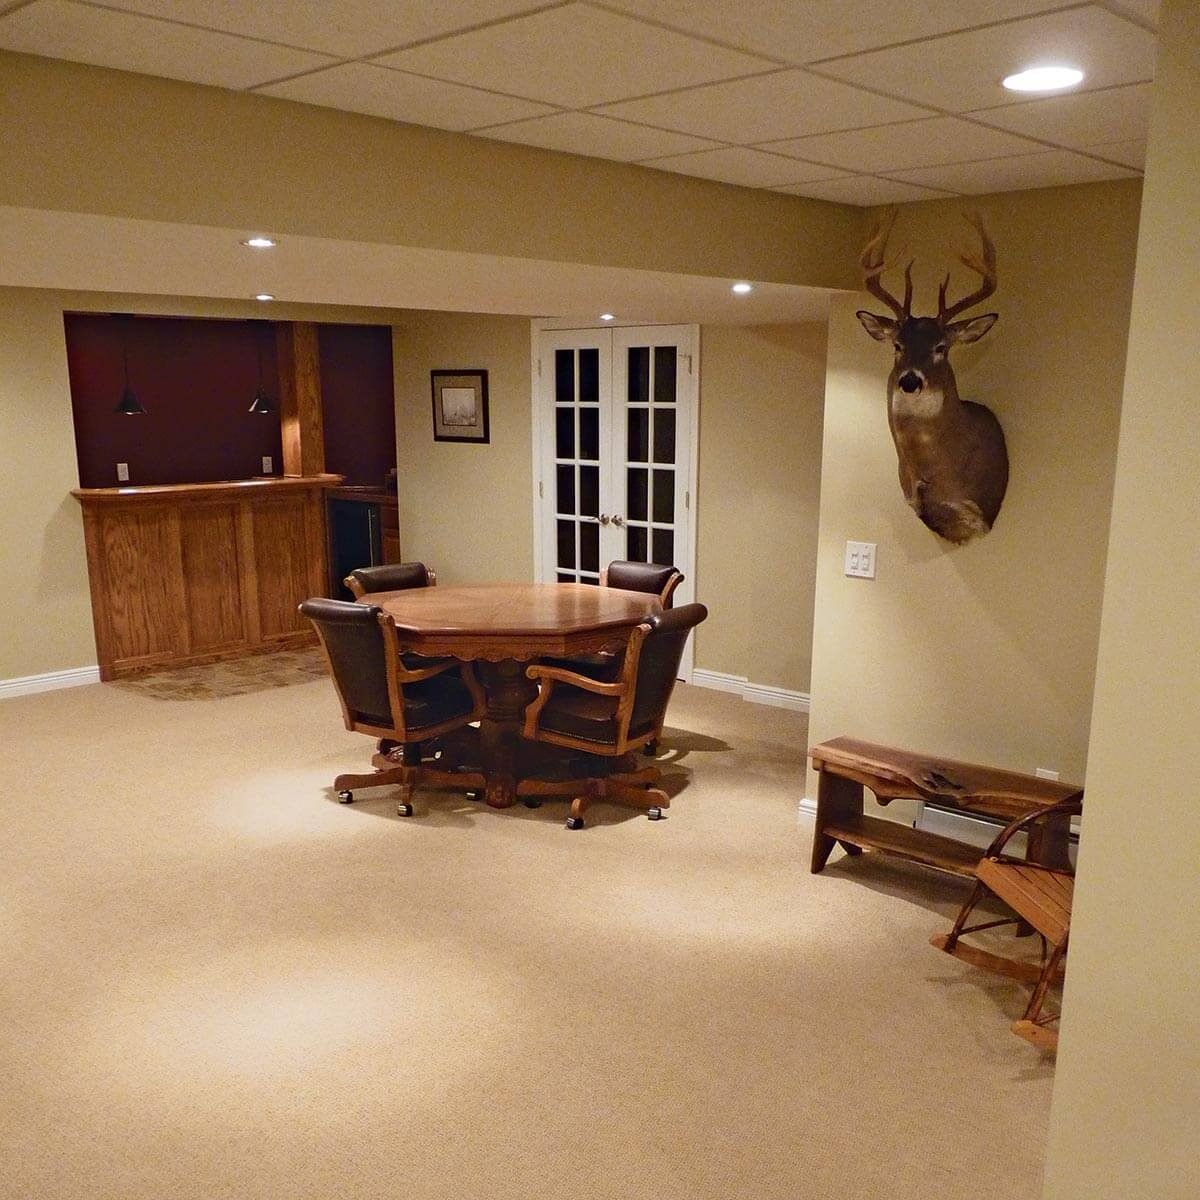 DIY Basement Remodel